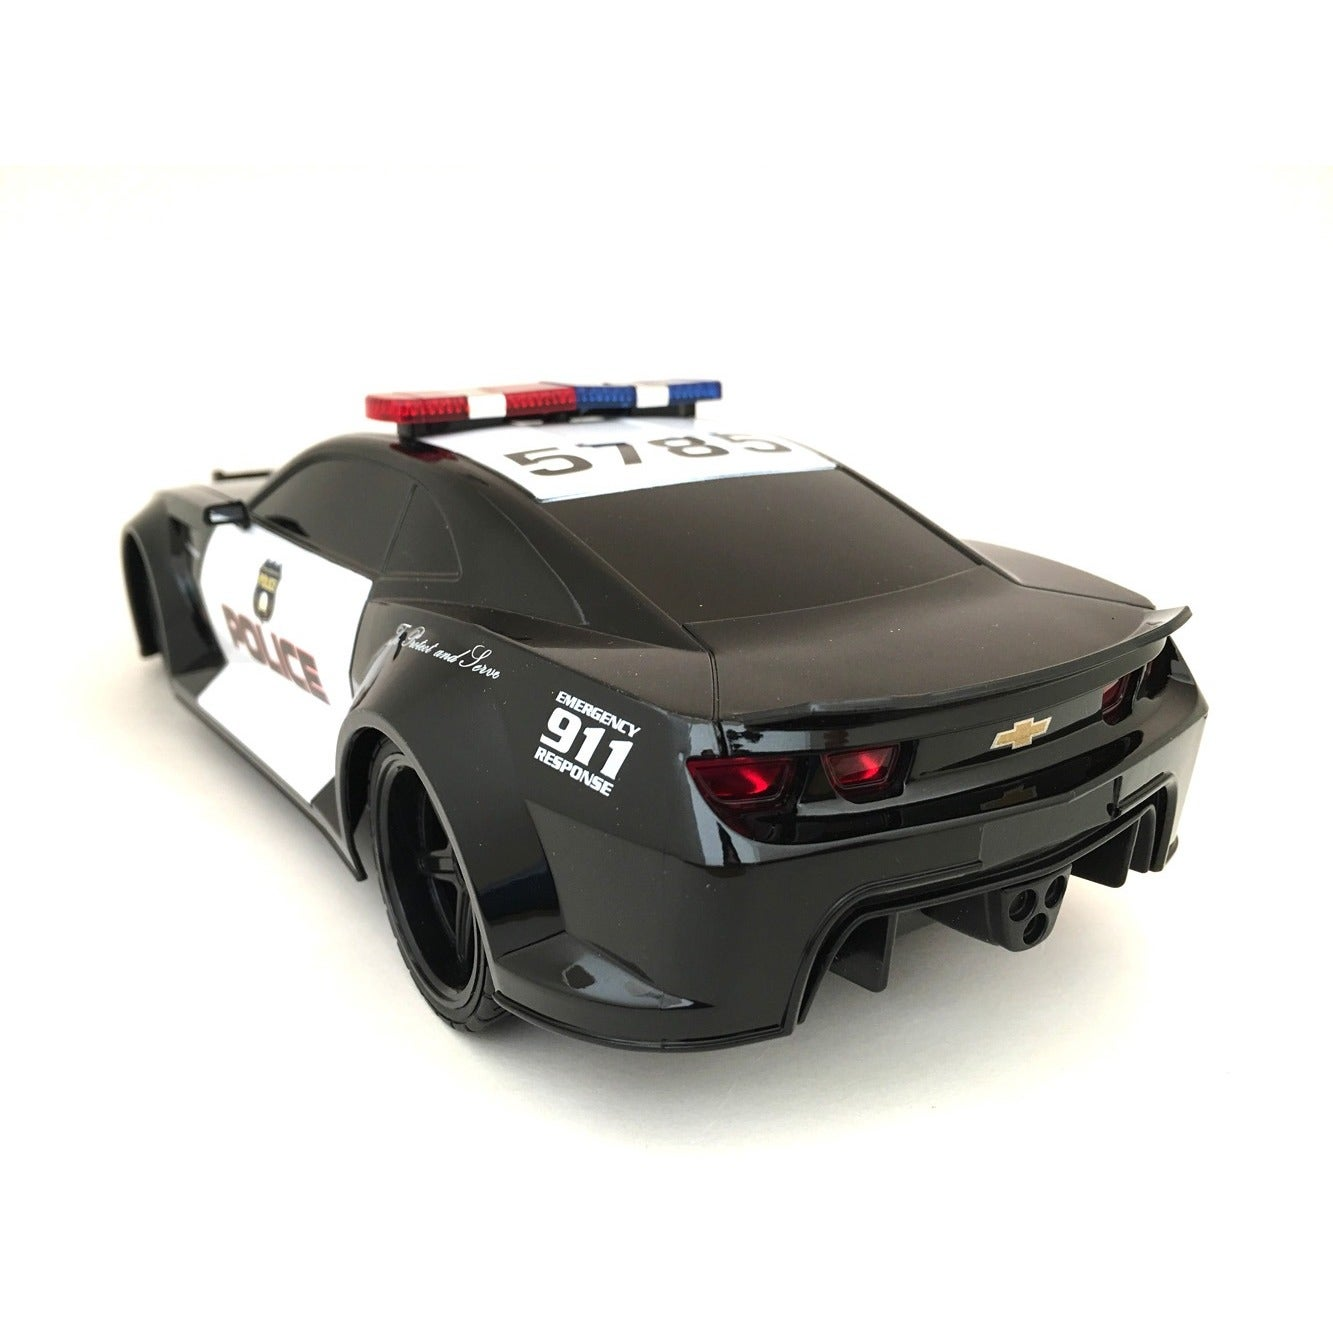 Tri Band Remote Control 1:18 Scale Chevrolet Camaro RC Police Car   Free  Shipping On Orders Over $45   Overstock.com   16606983